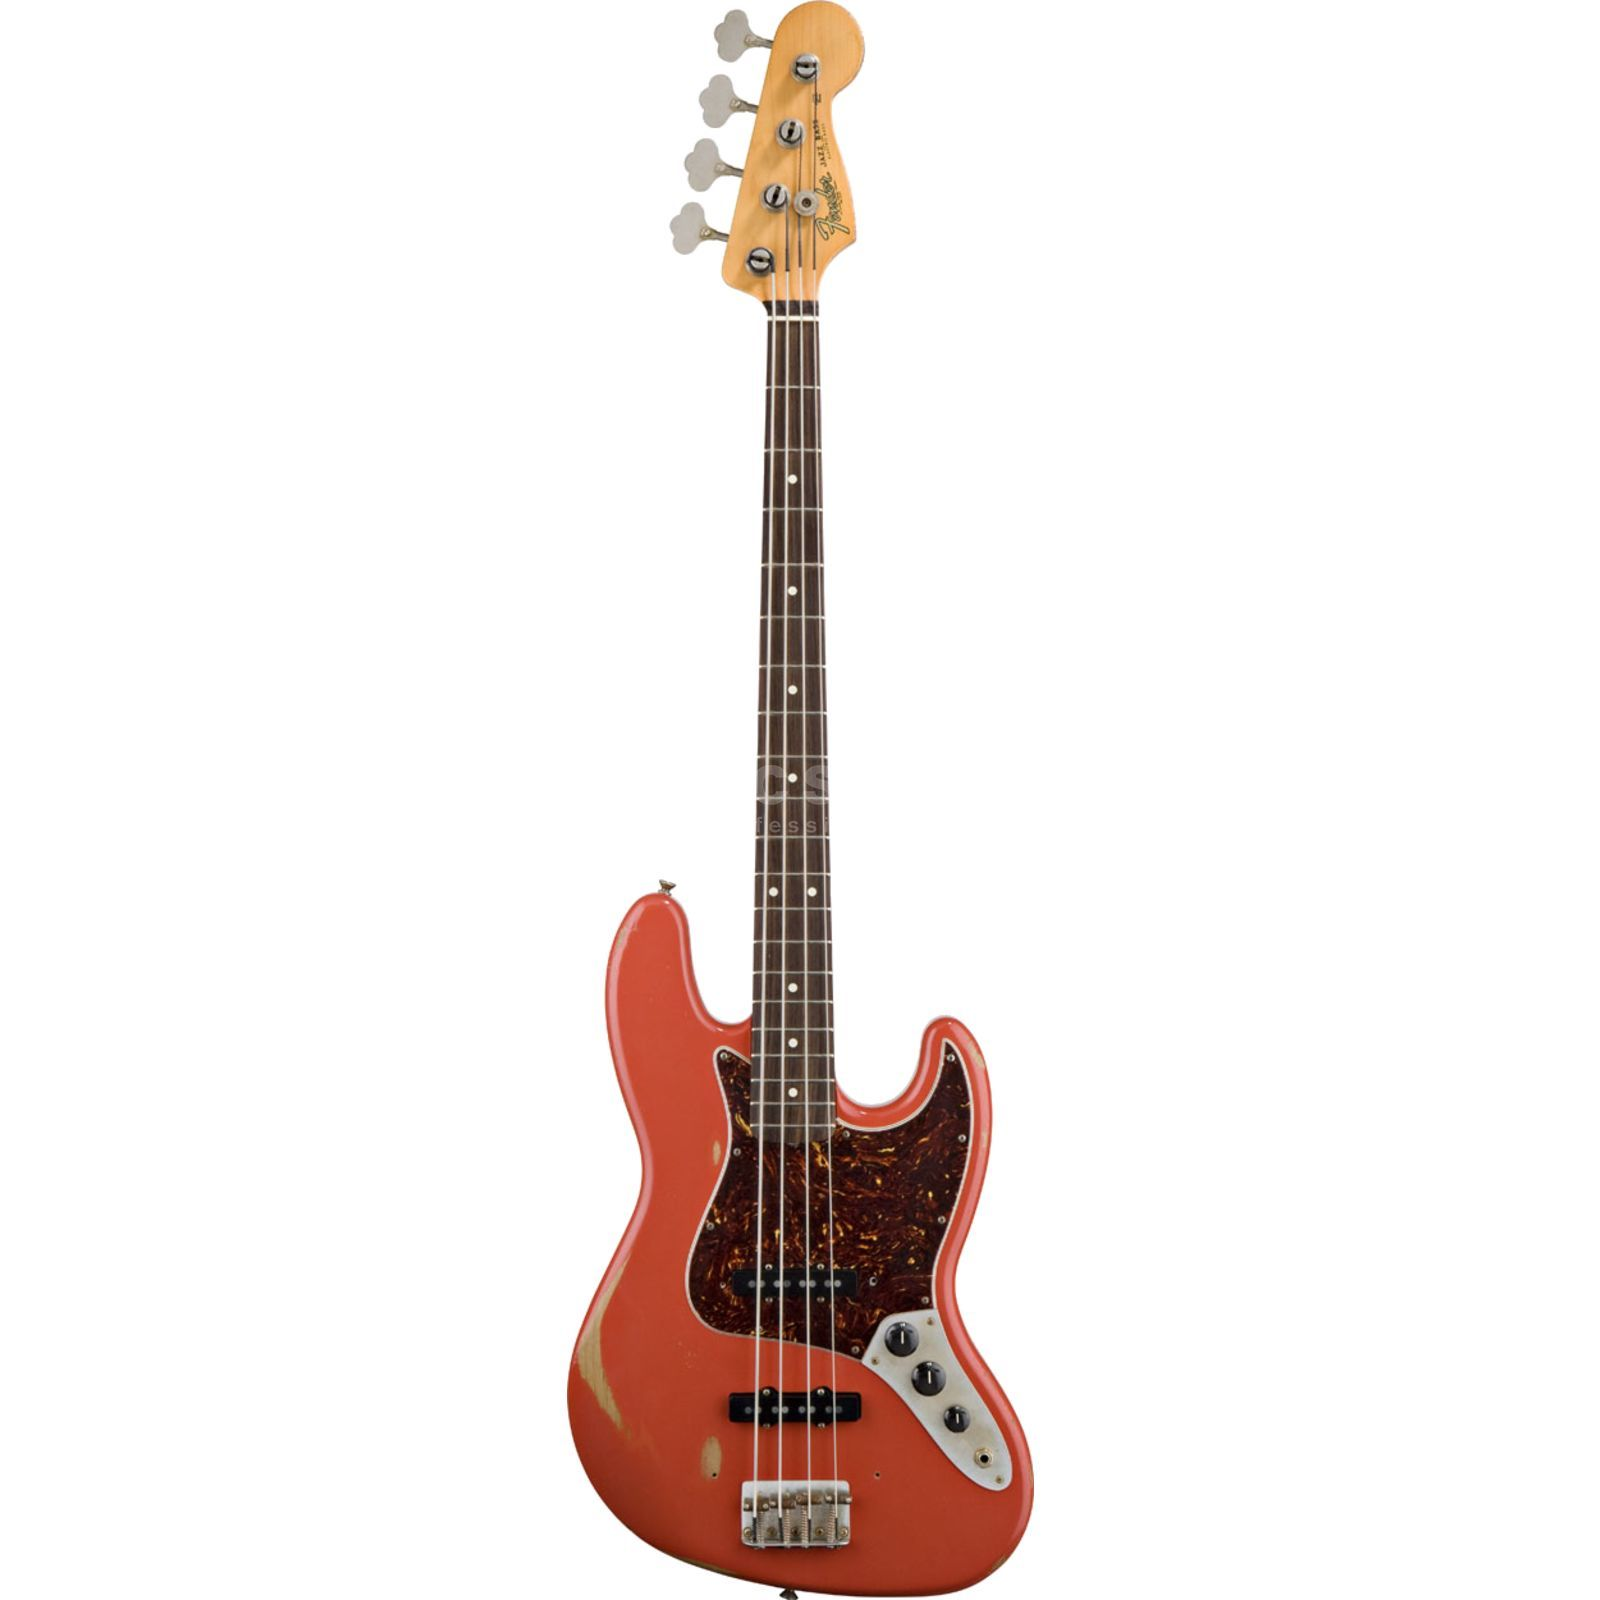 Fender Road Worn '60s J-Bass RW FRD Fiesta Red, housse incl. Image du produit